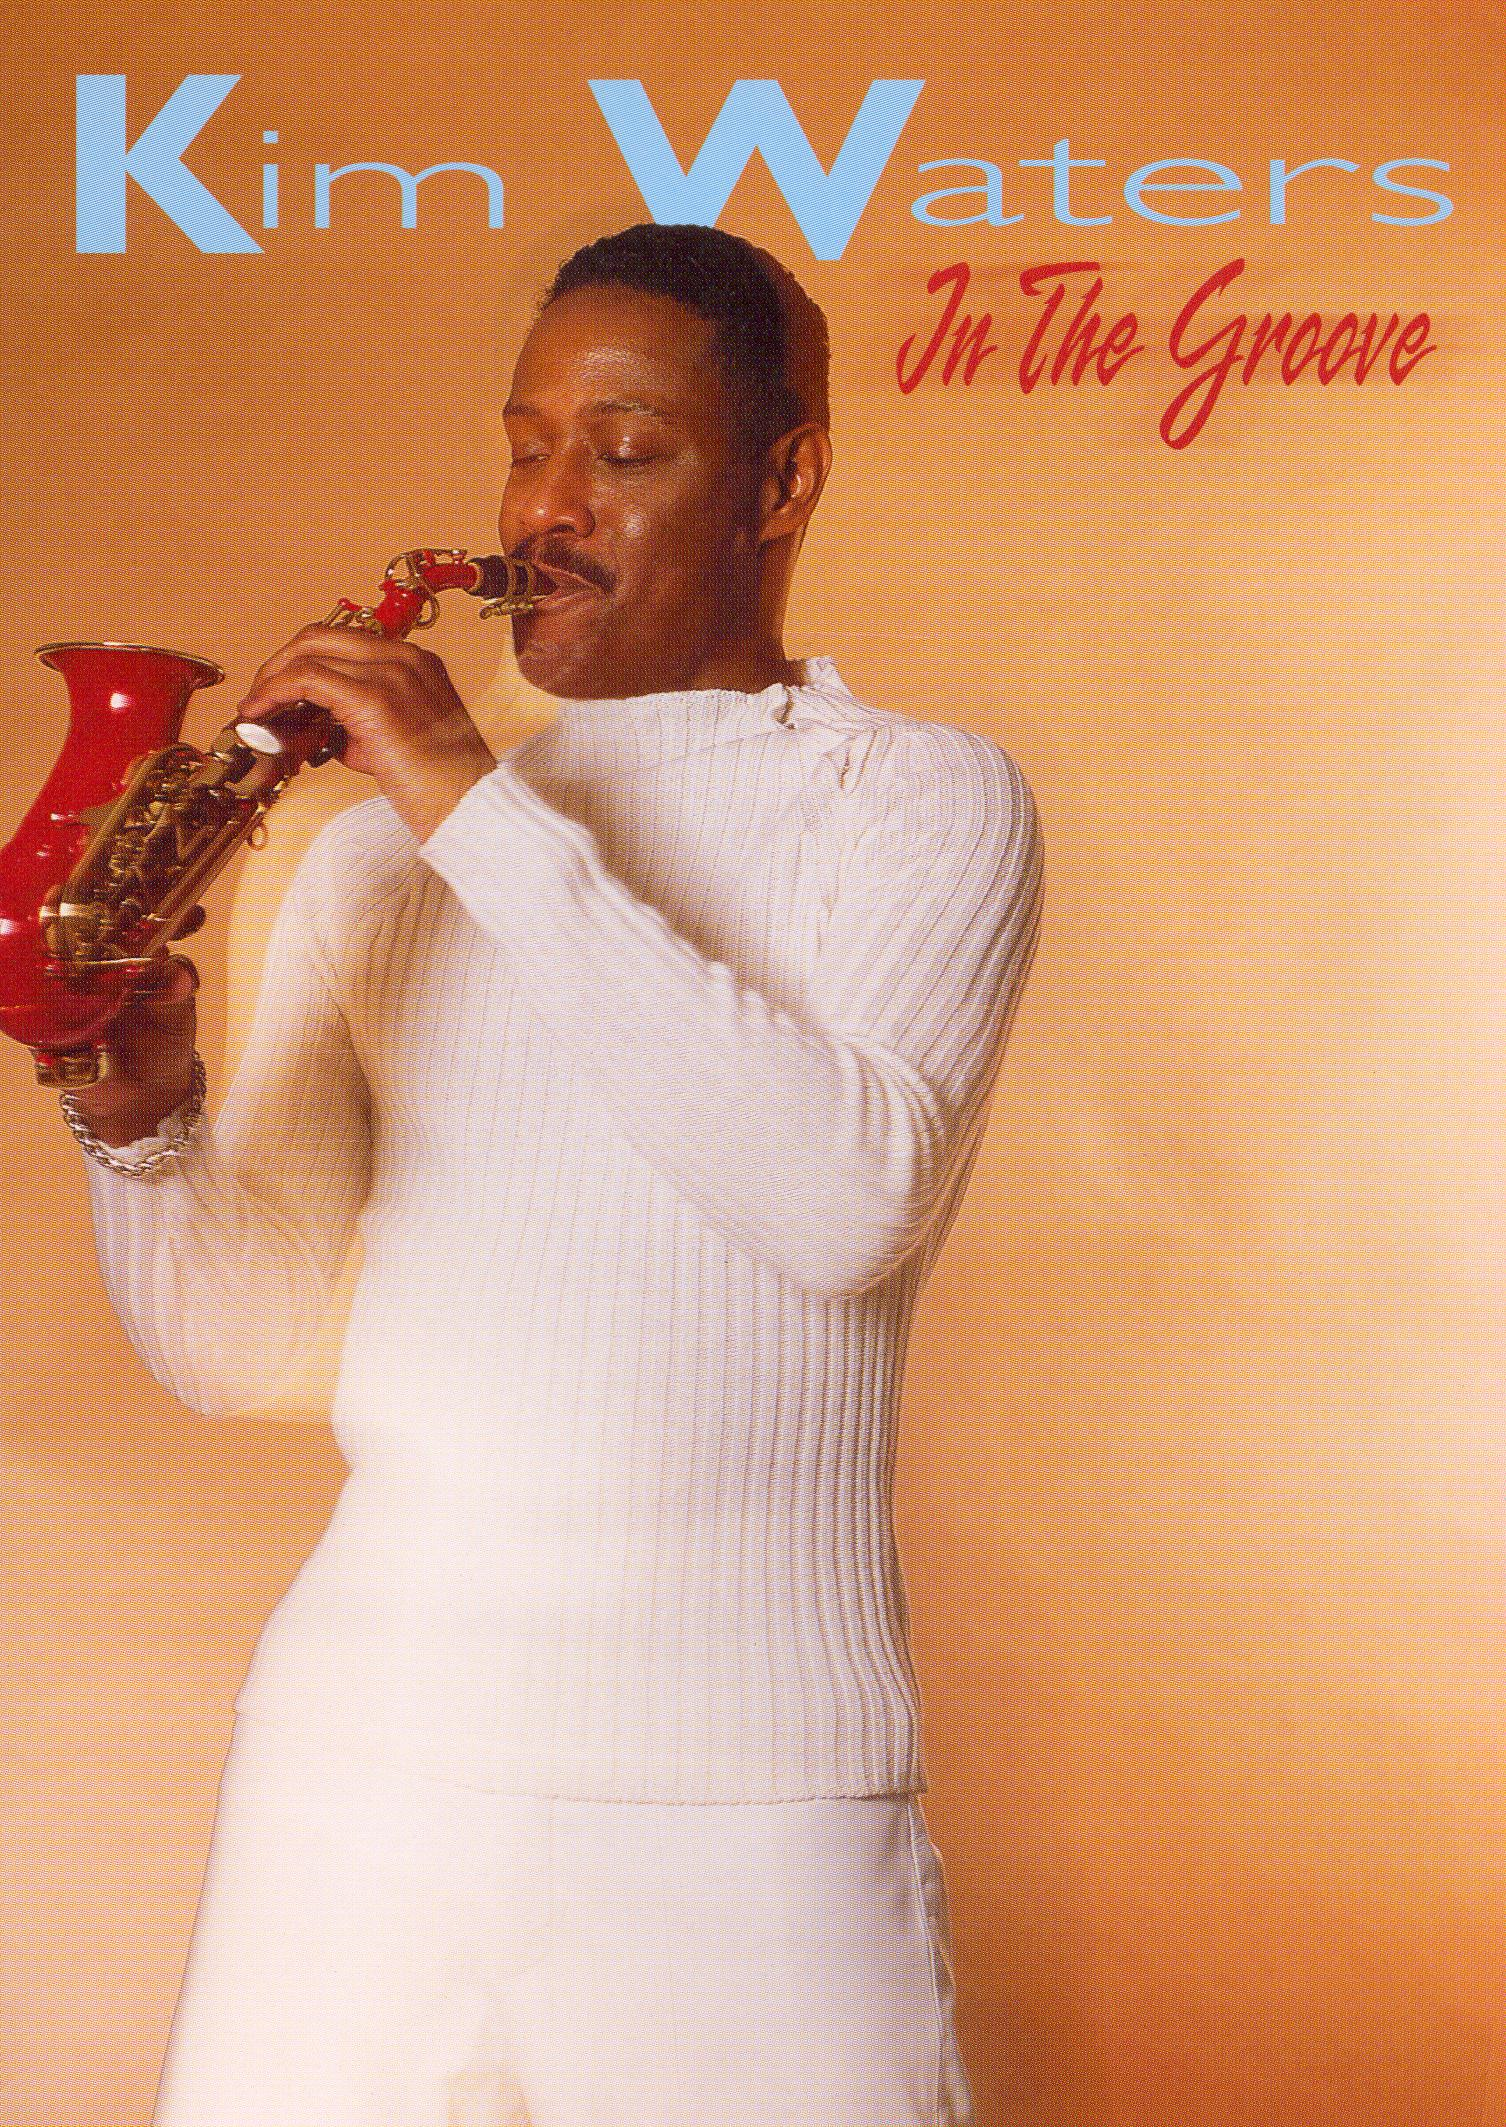 Kim Waters: In the Groove